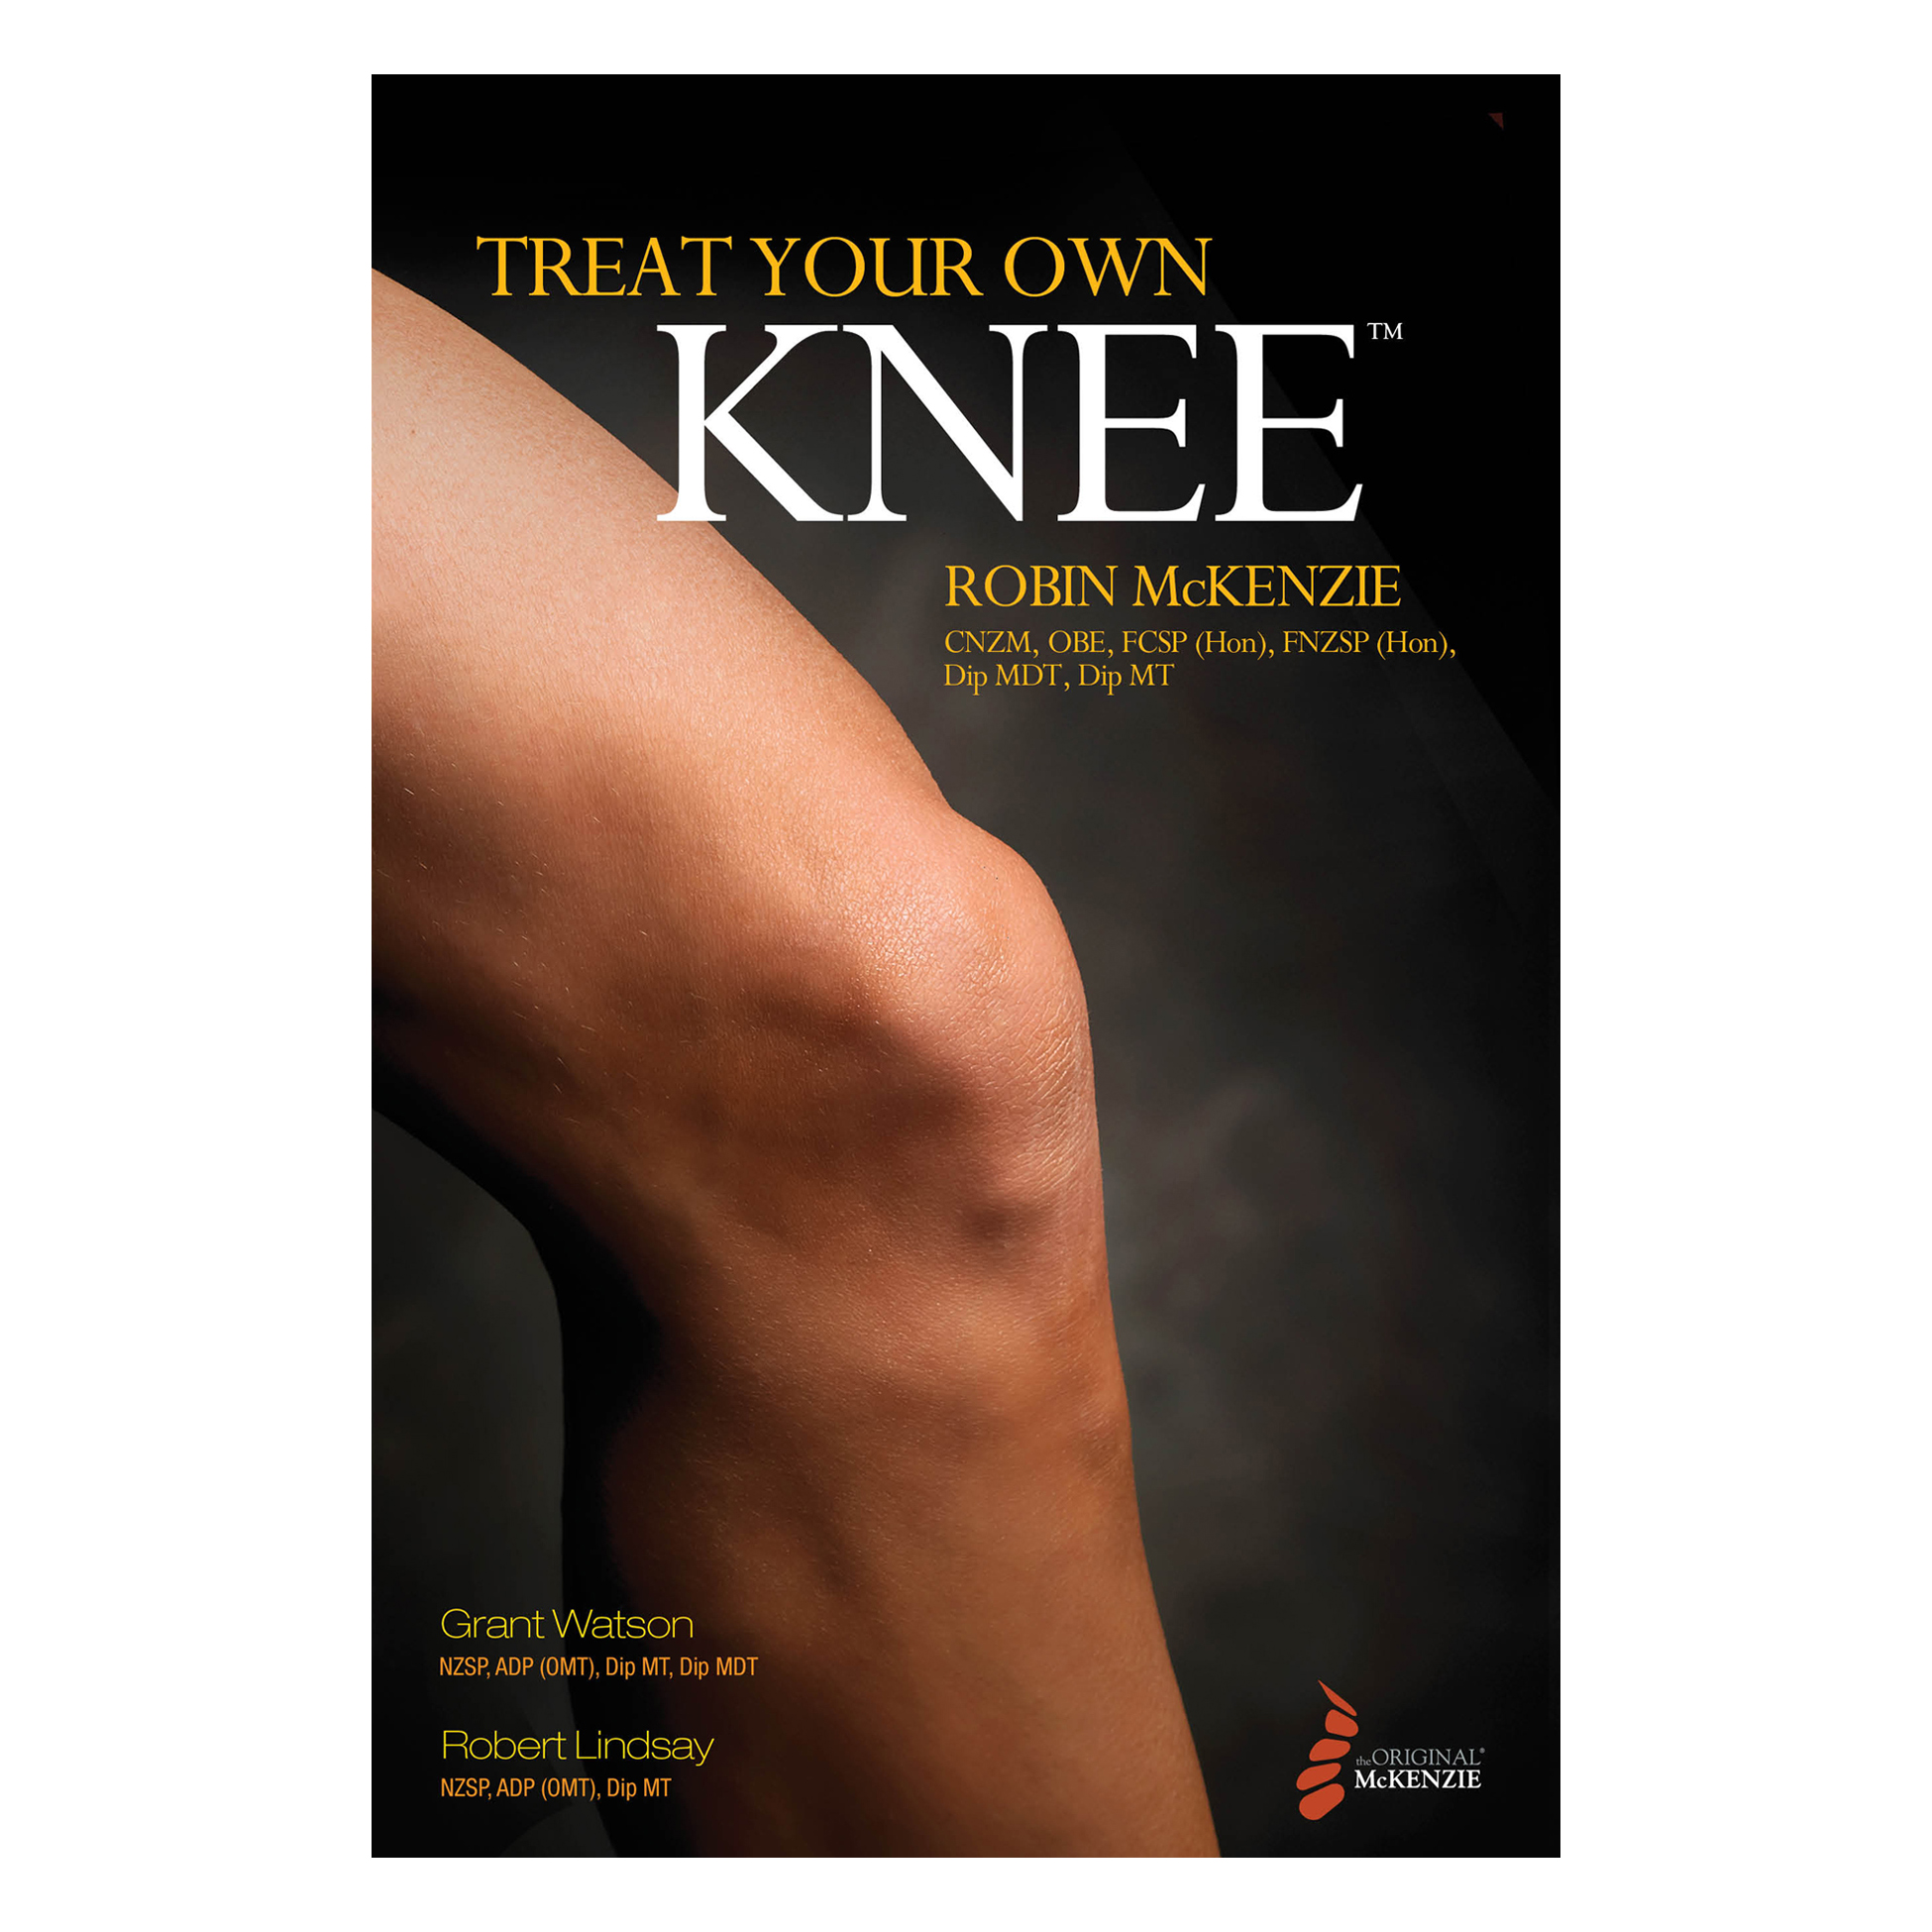 New from OPTP: 'Treat Your Own Knee,' by Robin McKenzie, MASSAGE Magazine